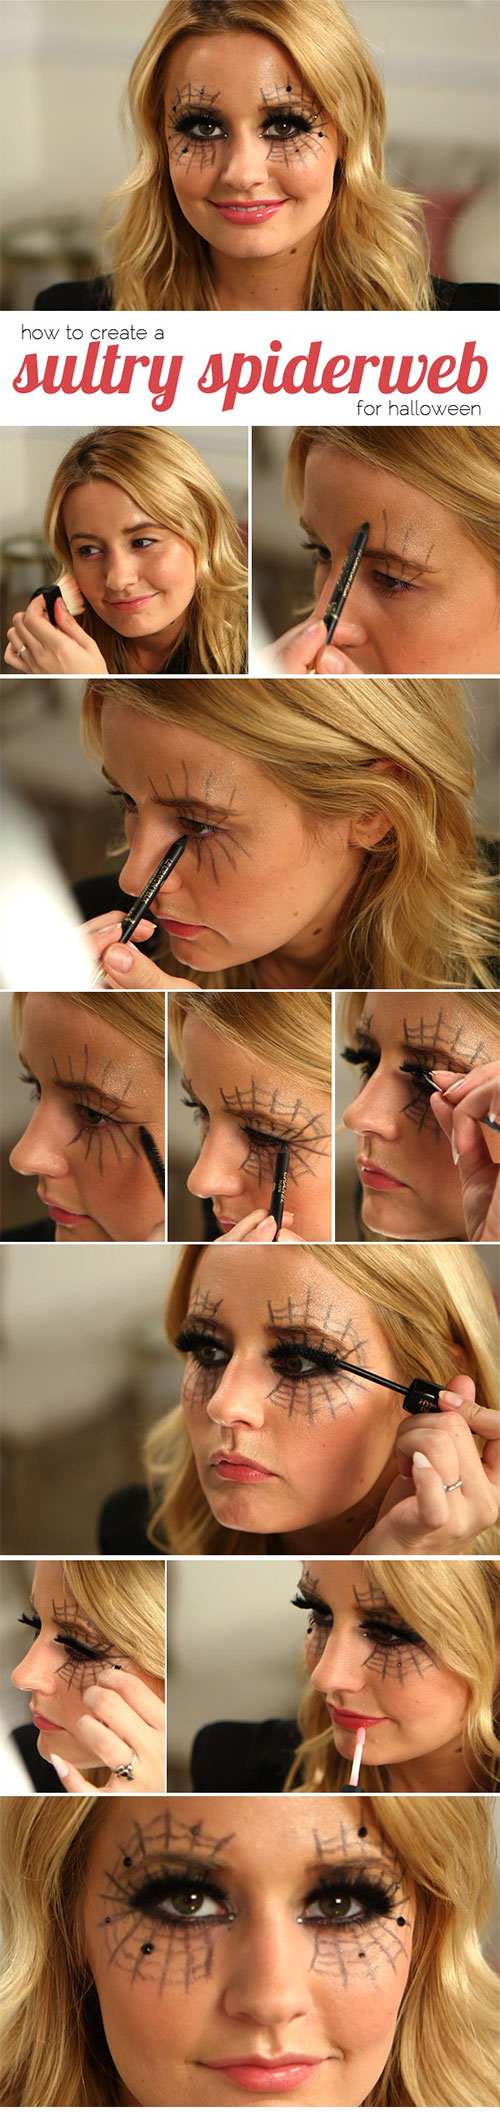 15-Easy-Step-By-Step-Halloween-Make-Up-Tutorials-For-Beginners-2014-8